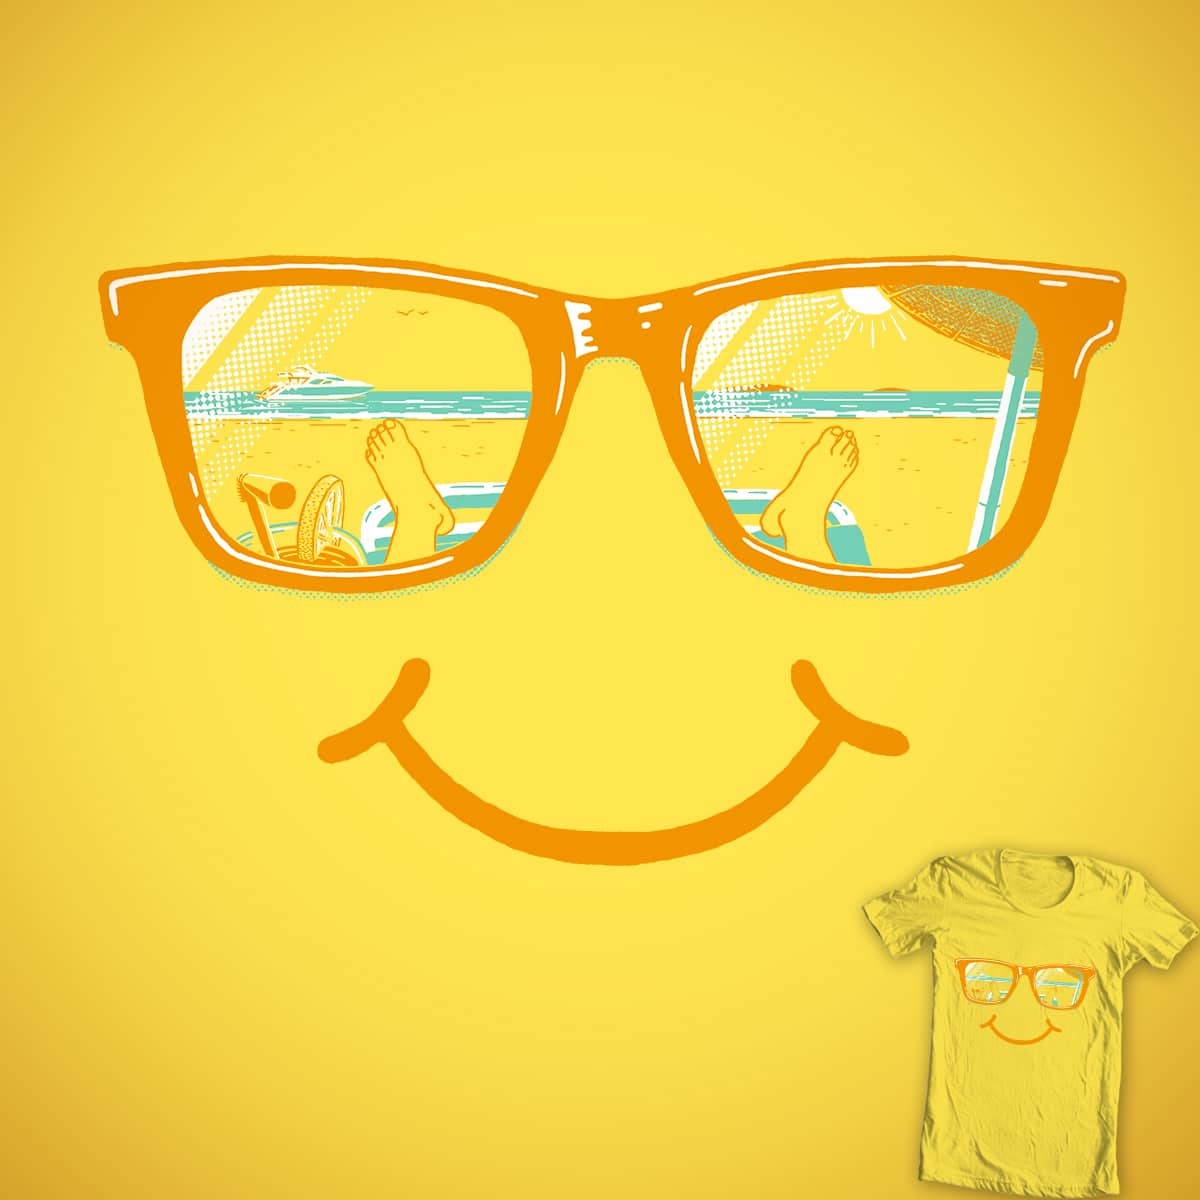 Nice View by c-royal on Threadless